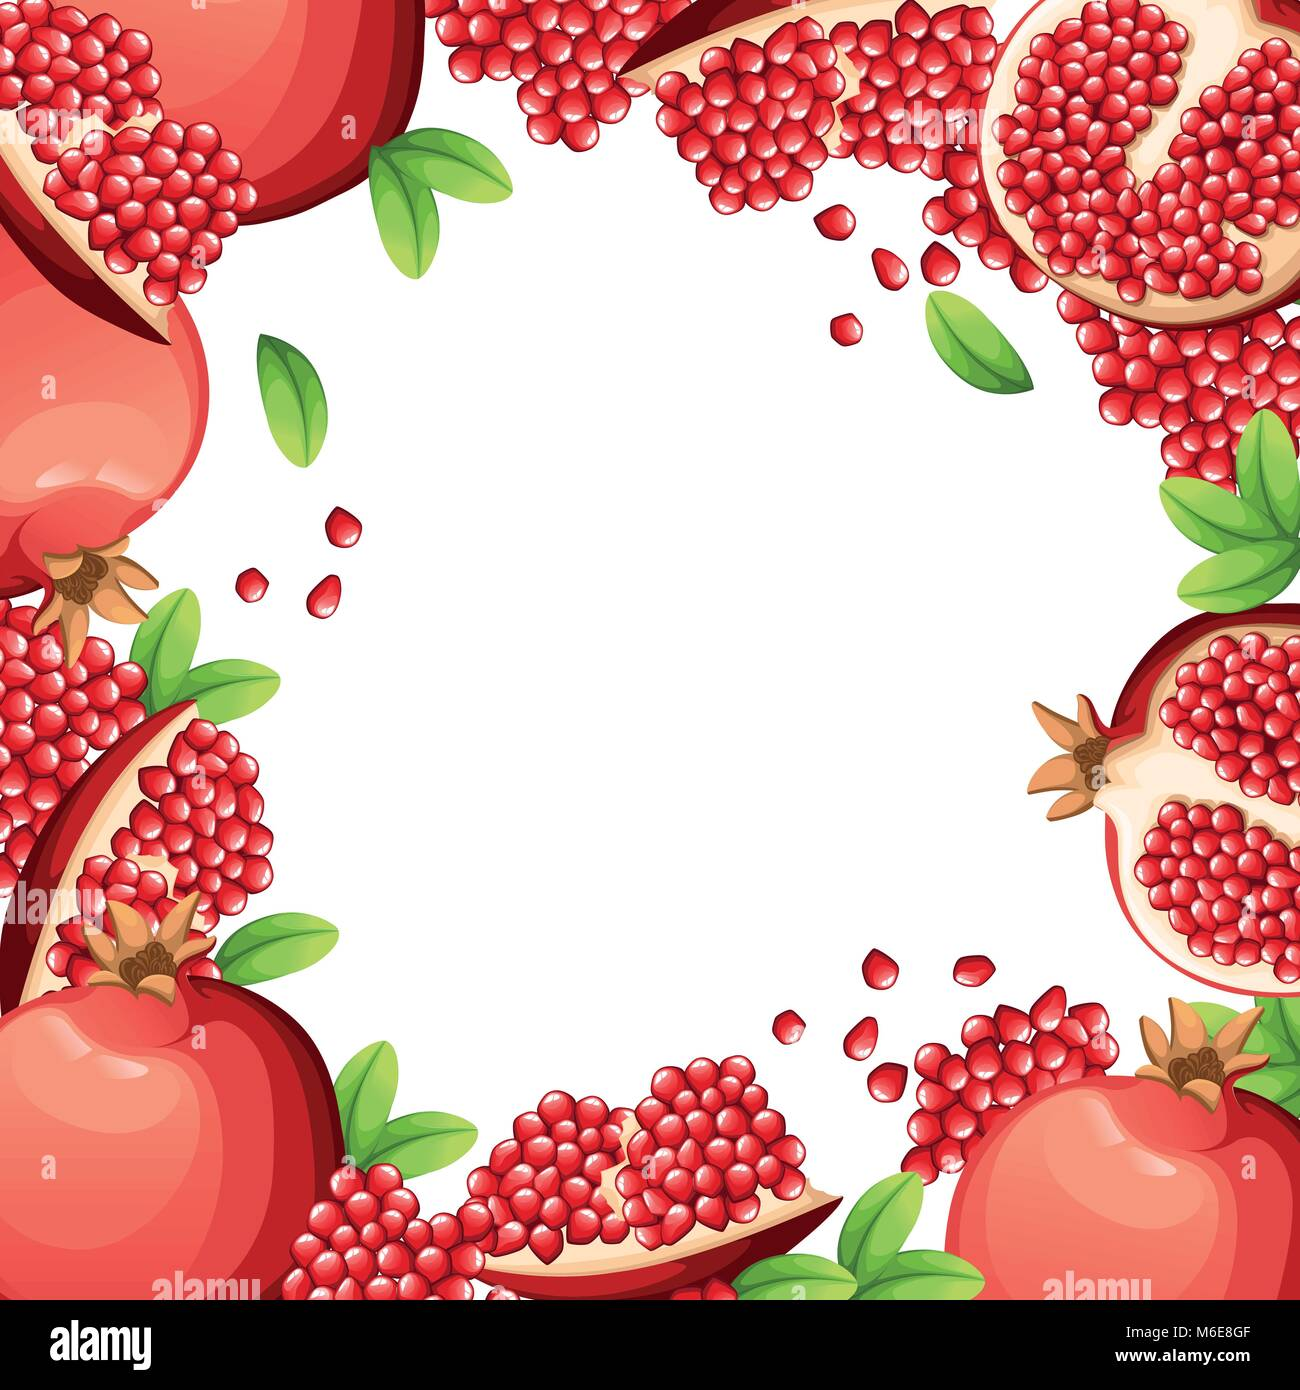 Pattern of pomegranate and fresh seeds of pomegranates. Vector illustration with empty space and opened pomegranate - Stock Vector